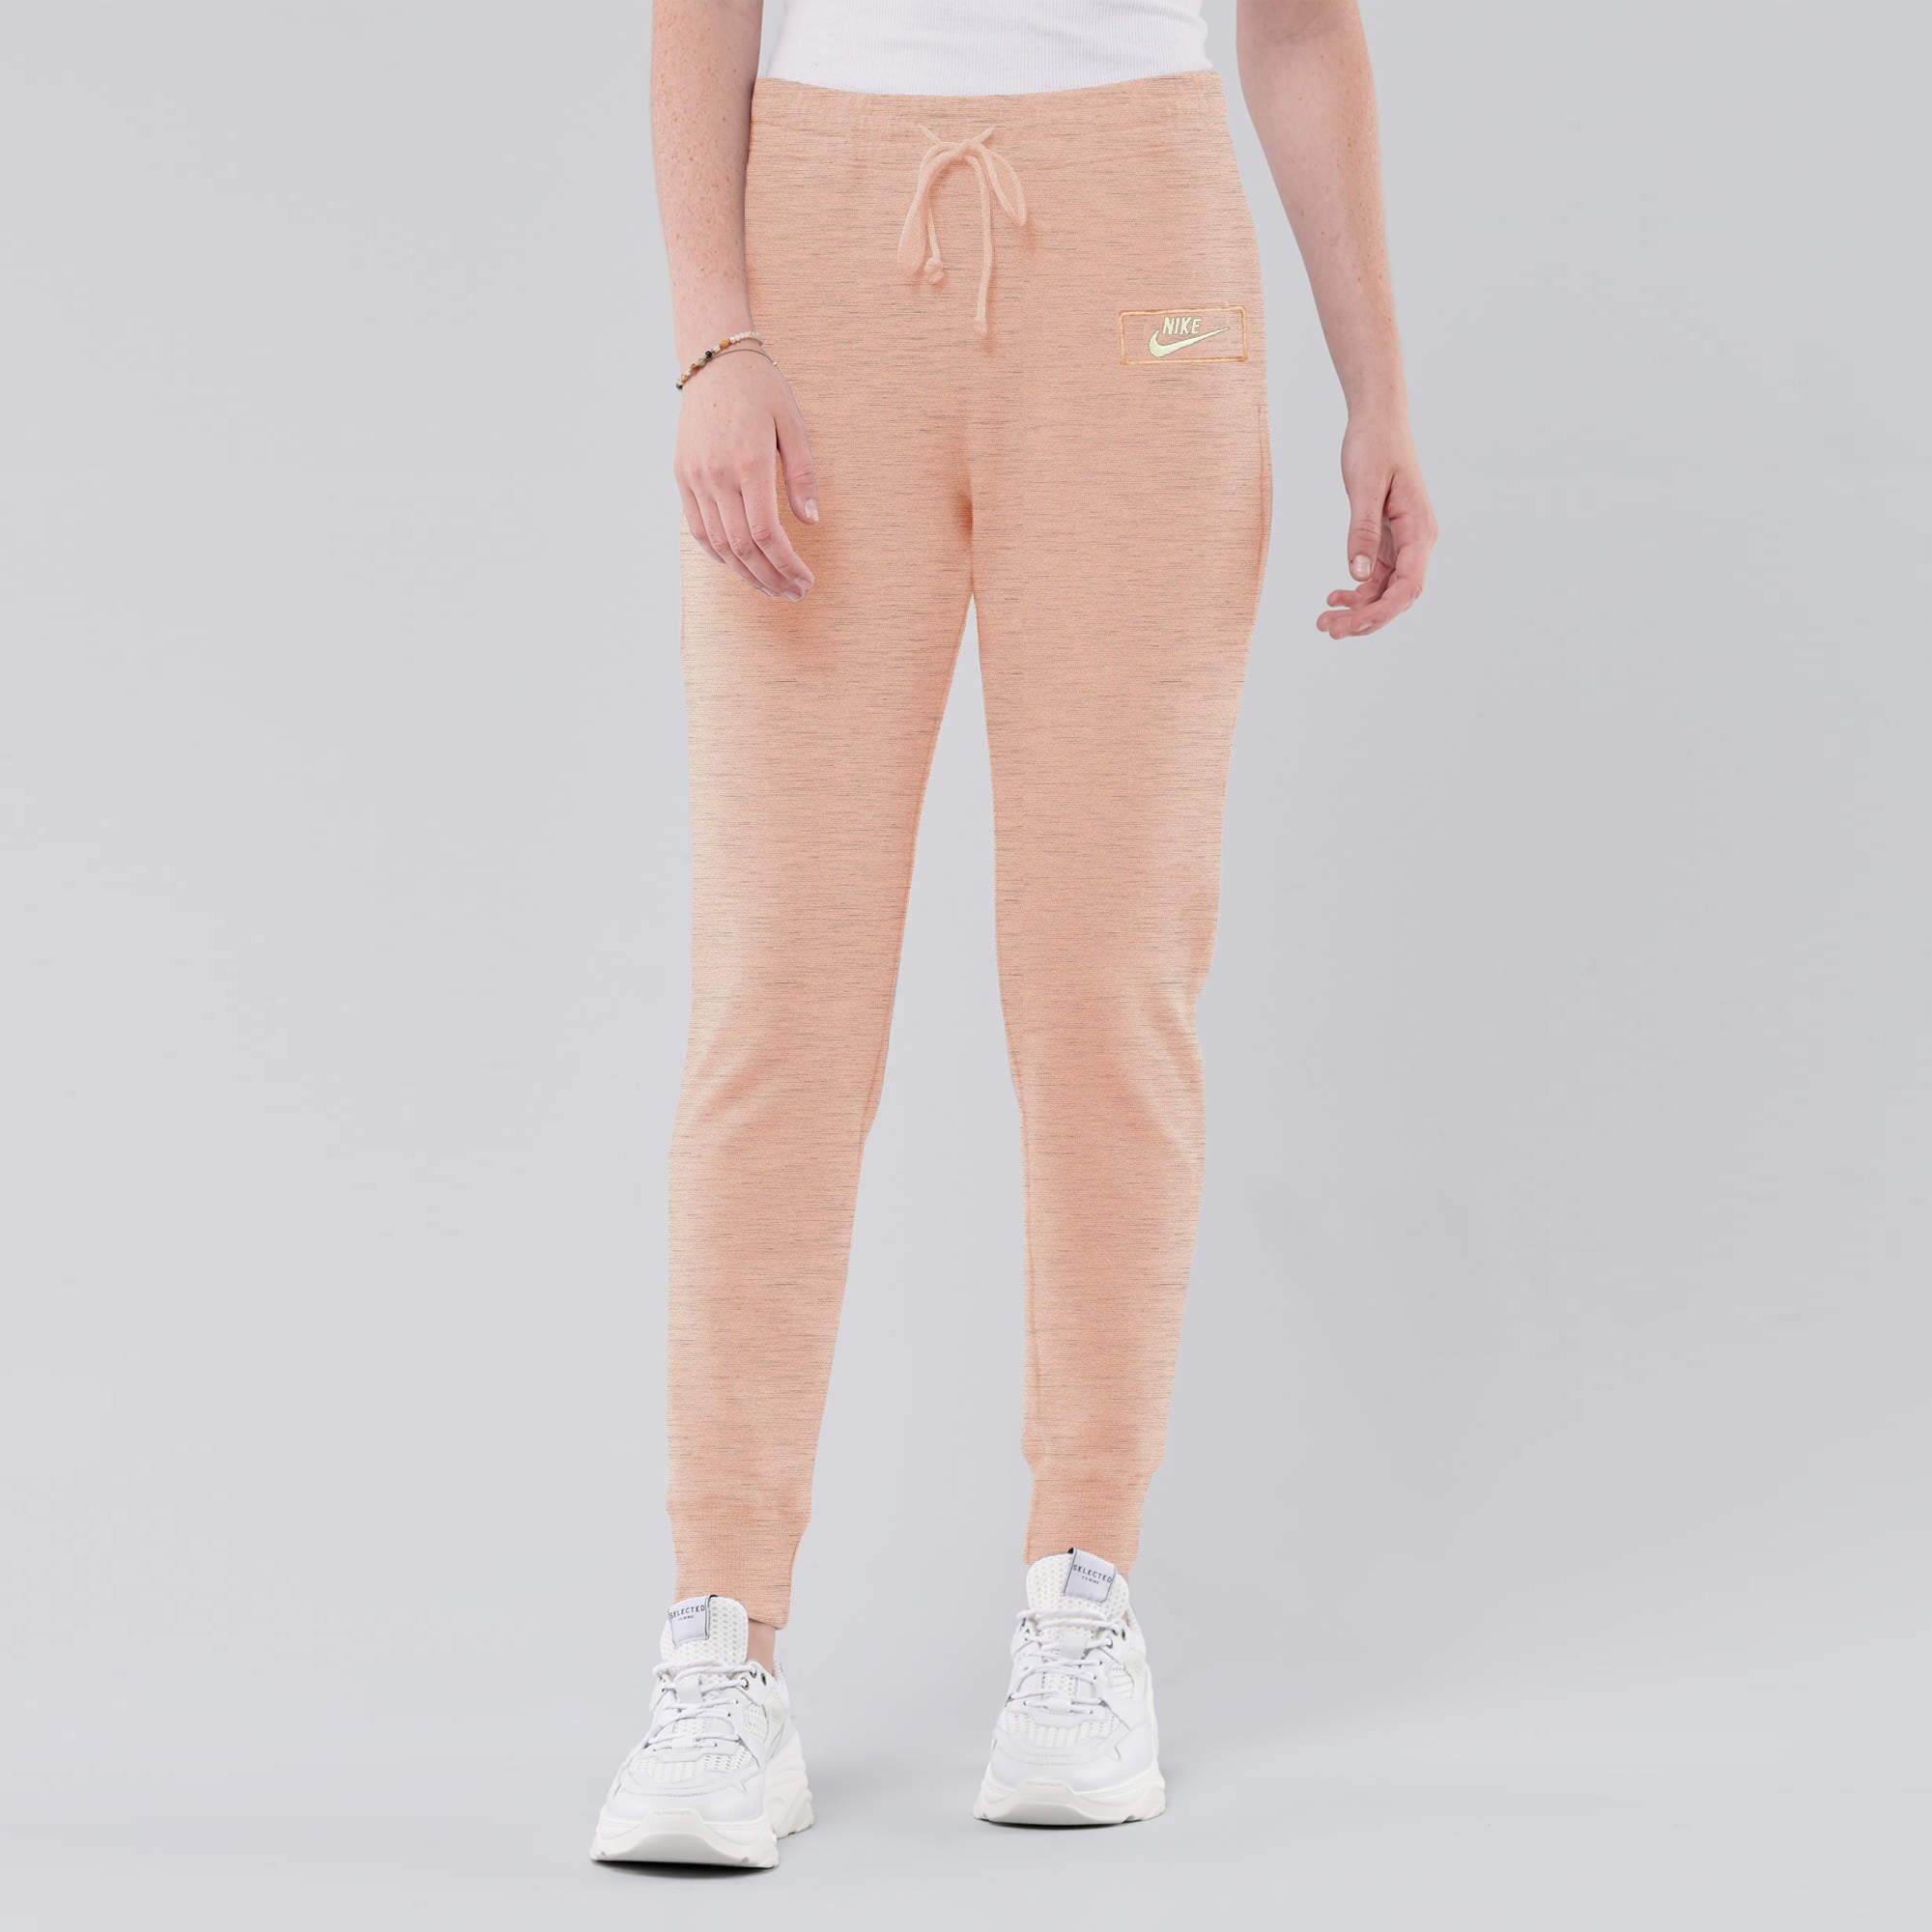 NK Fleece Slim Fit Jogger Trouser For Ladies-Peach Melange With White Embroidery-AN1977